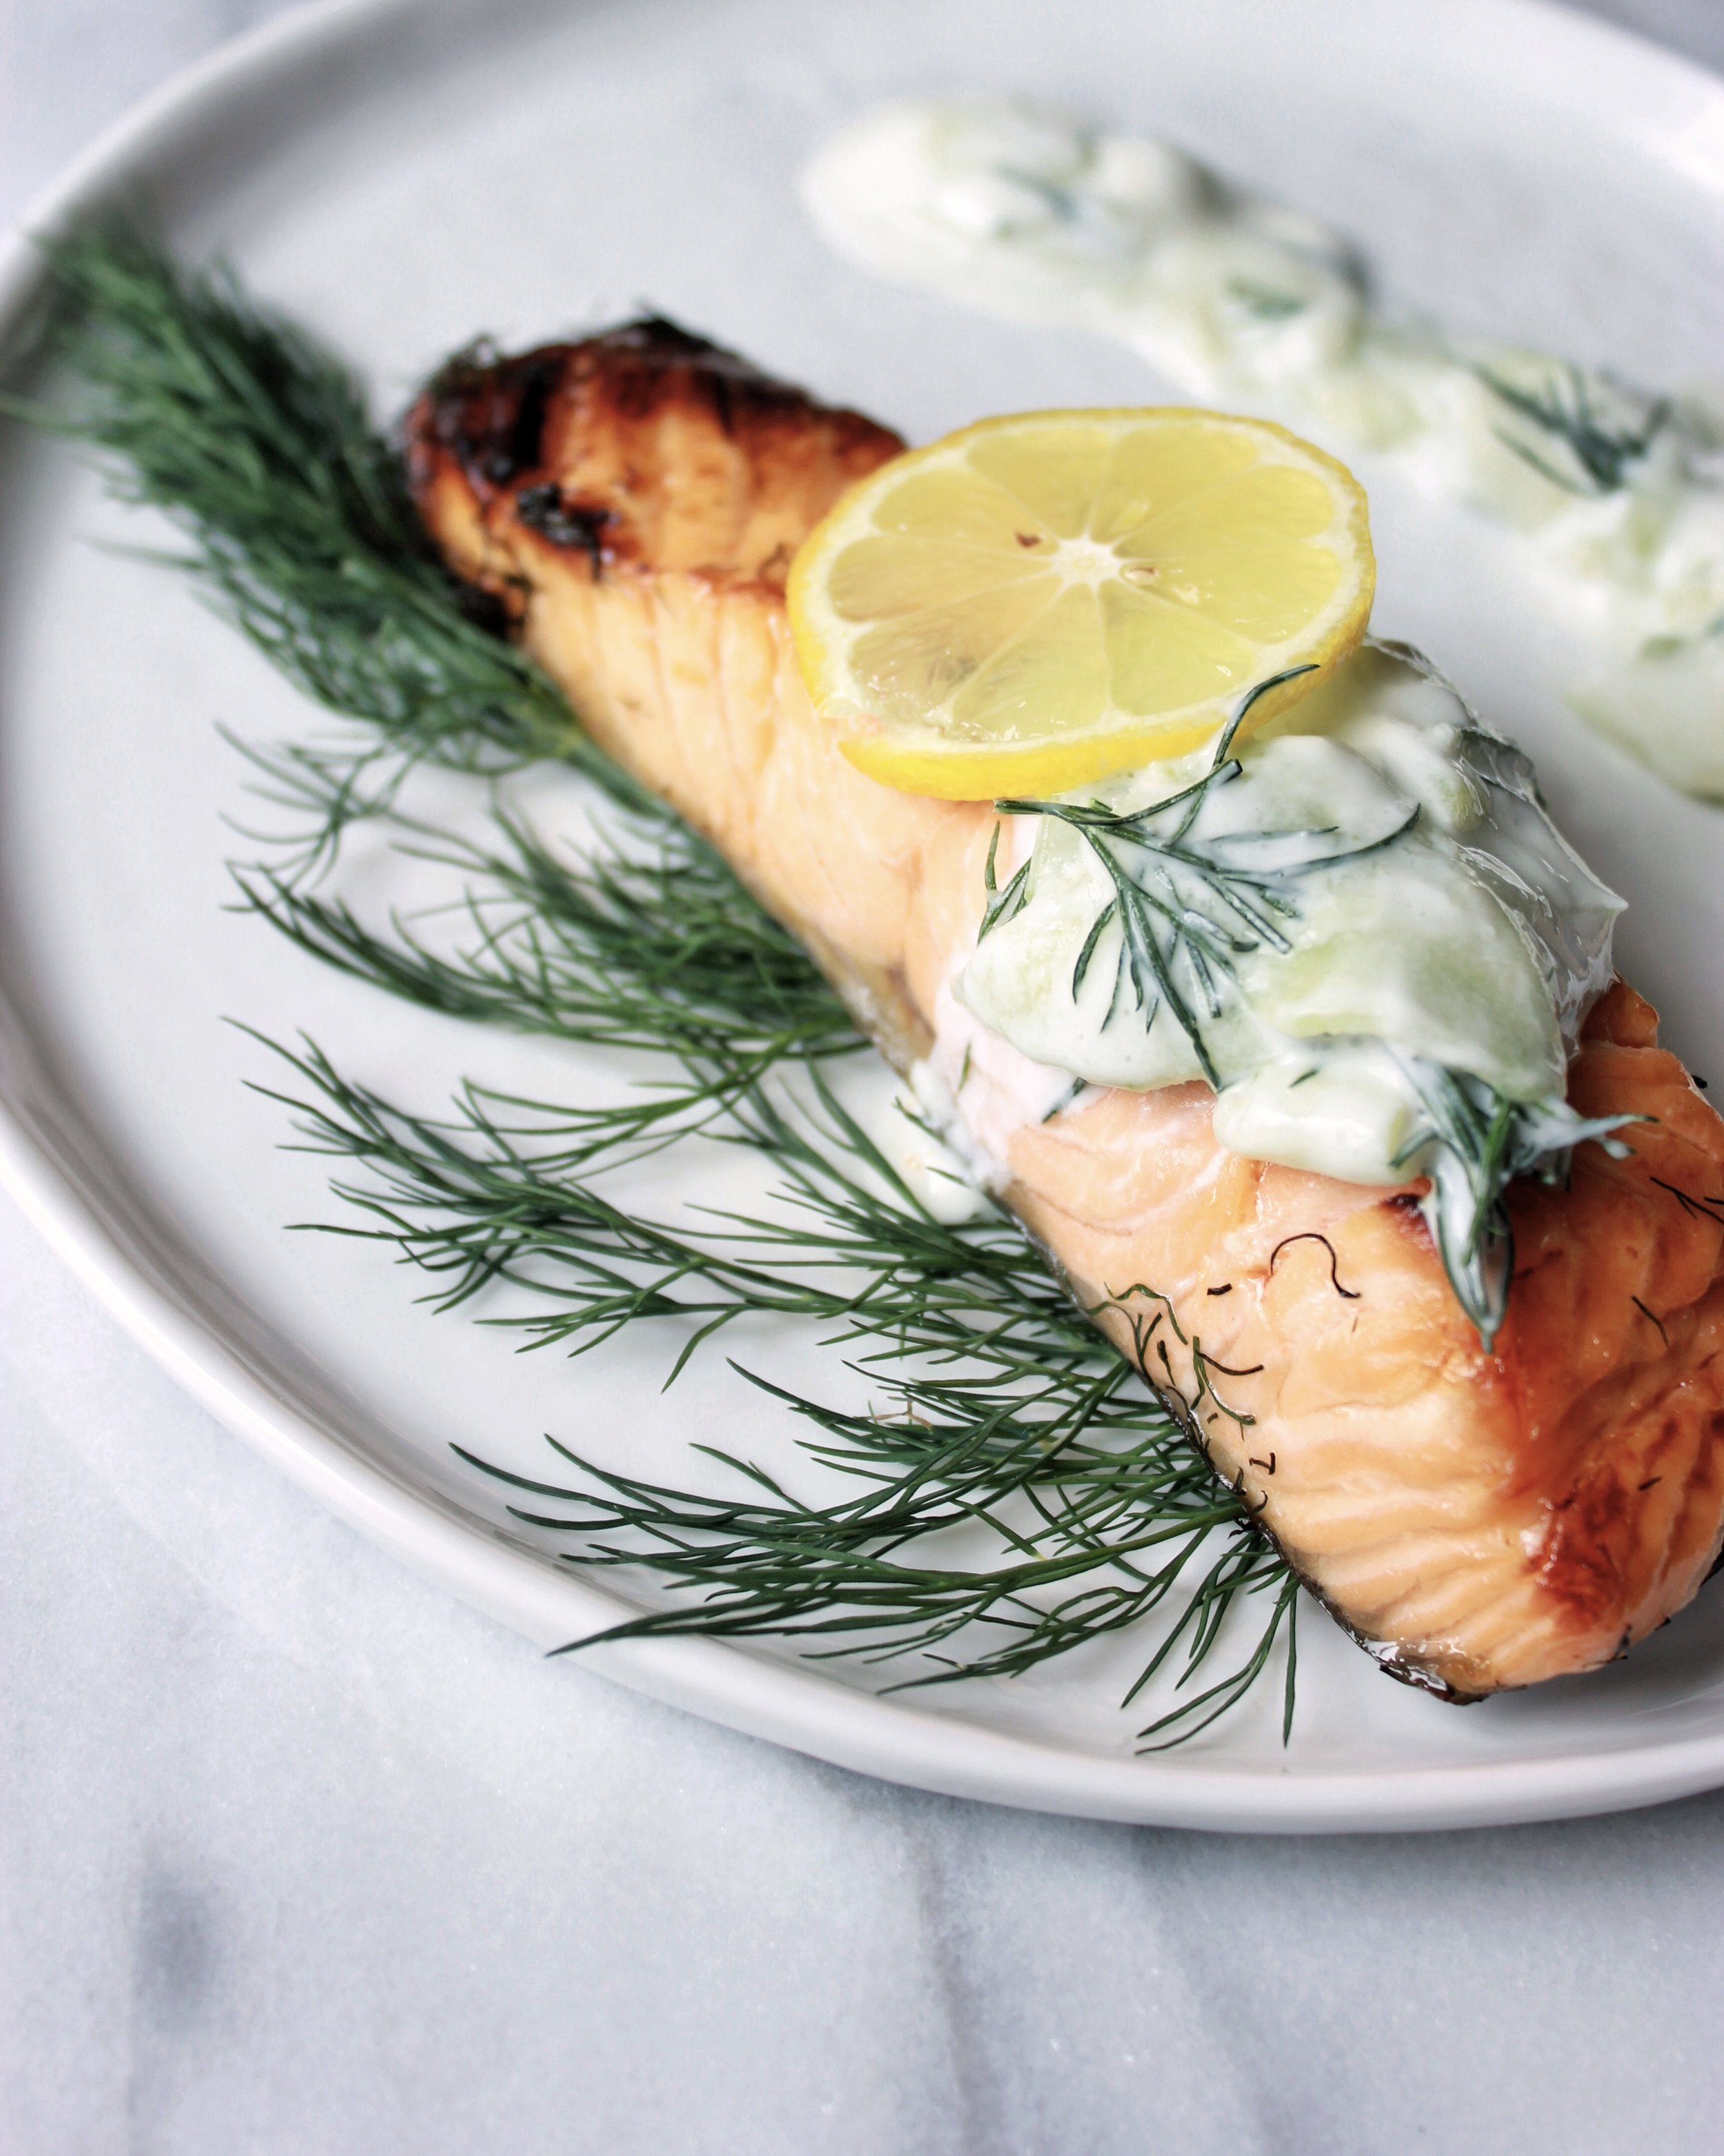 Spicy Chile Soy Garlic Salmon